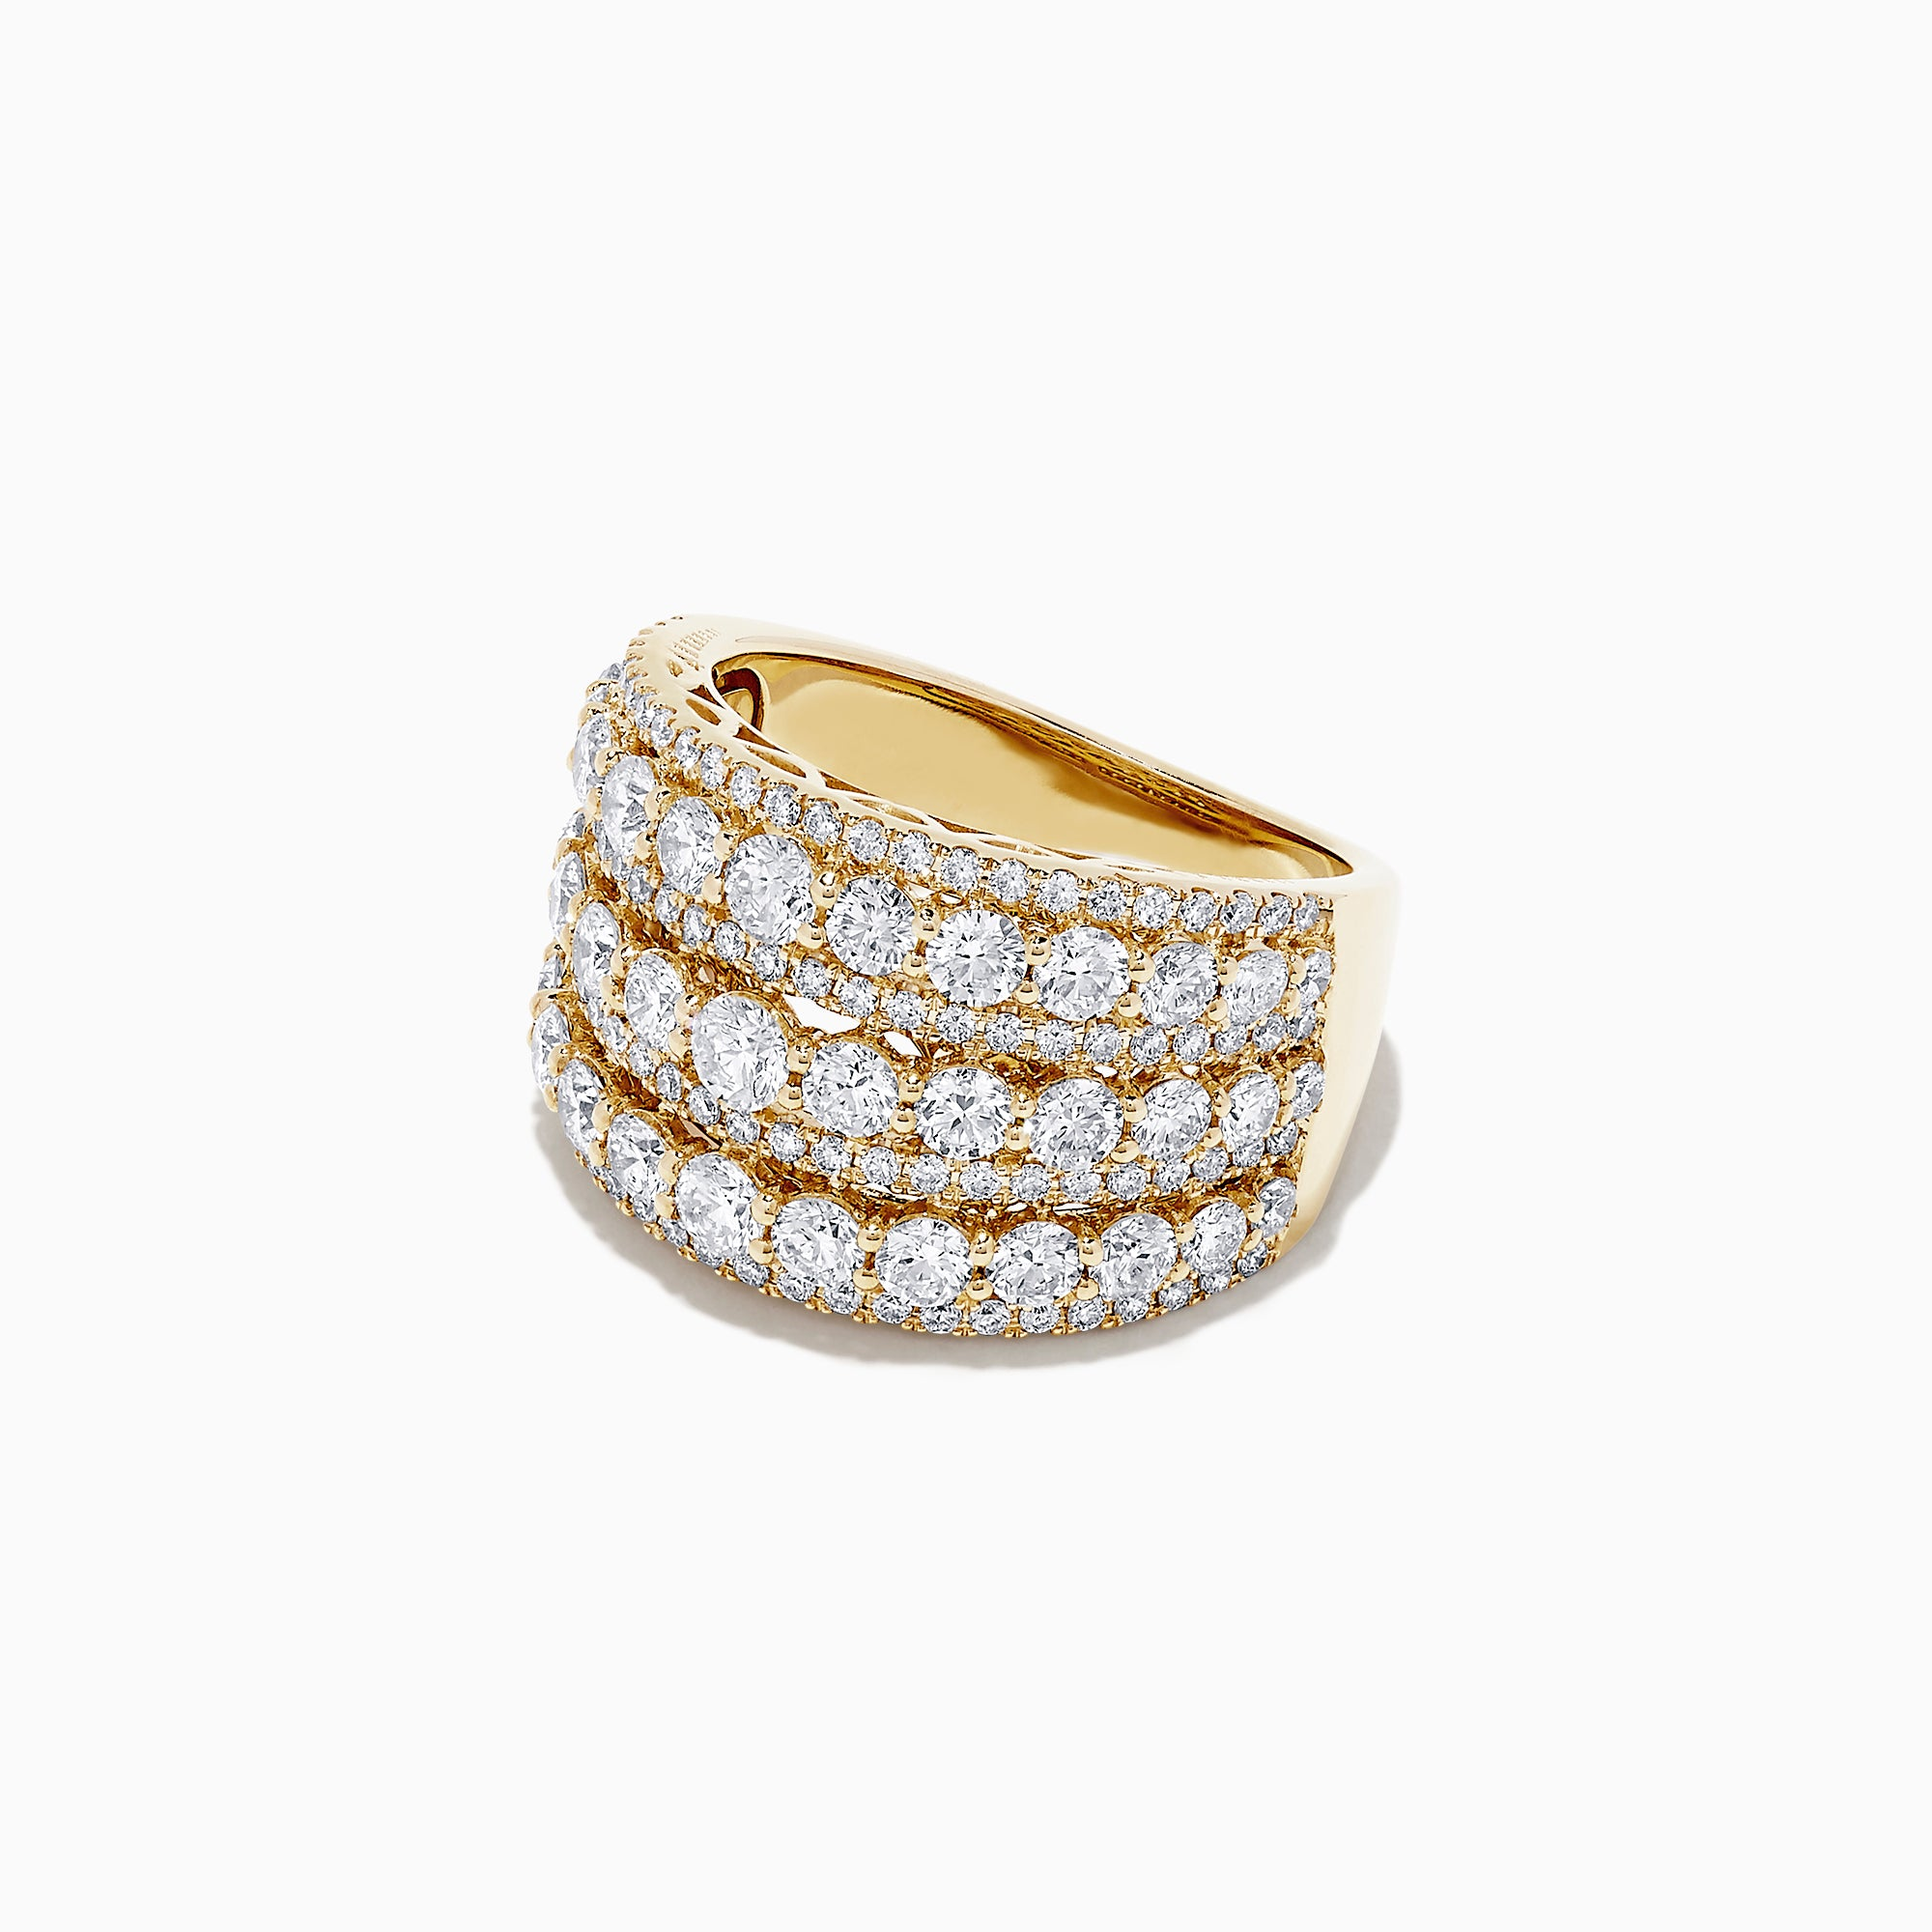 Effy D'Oro 14K Yellow Gold Diamond Wide Band Ring, 2.92 TCW